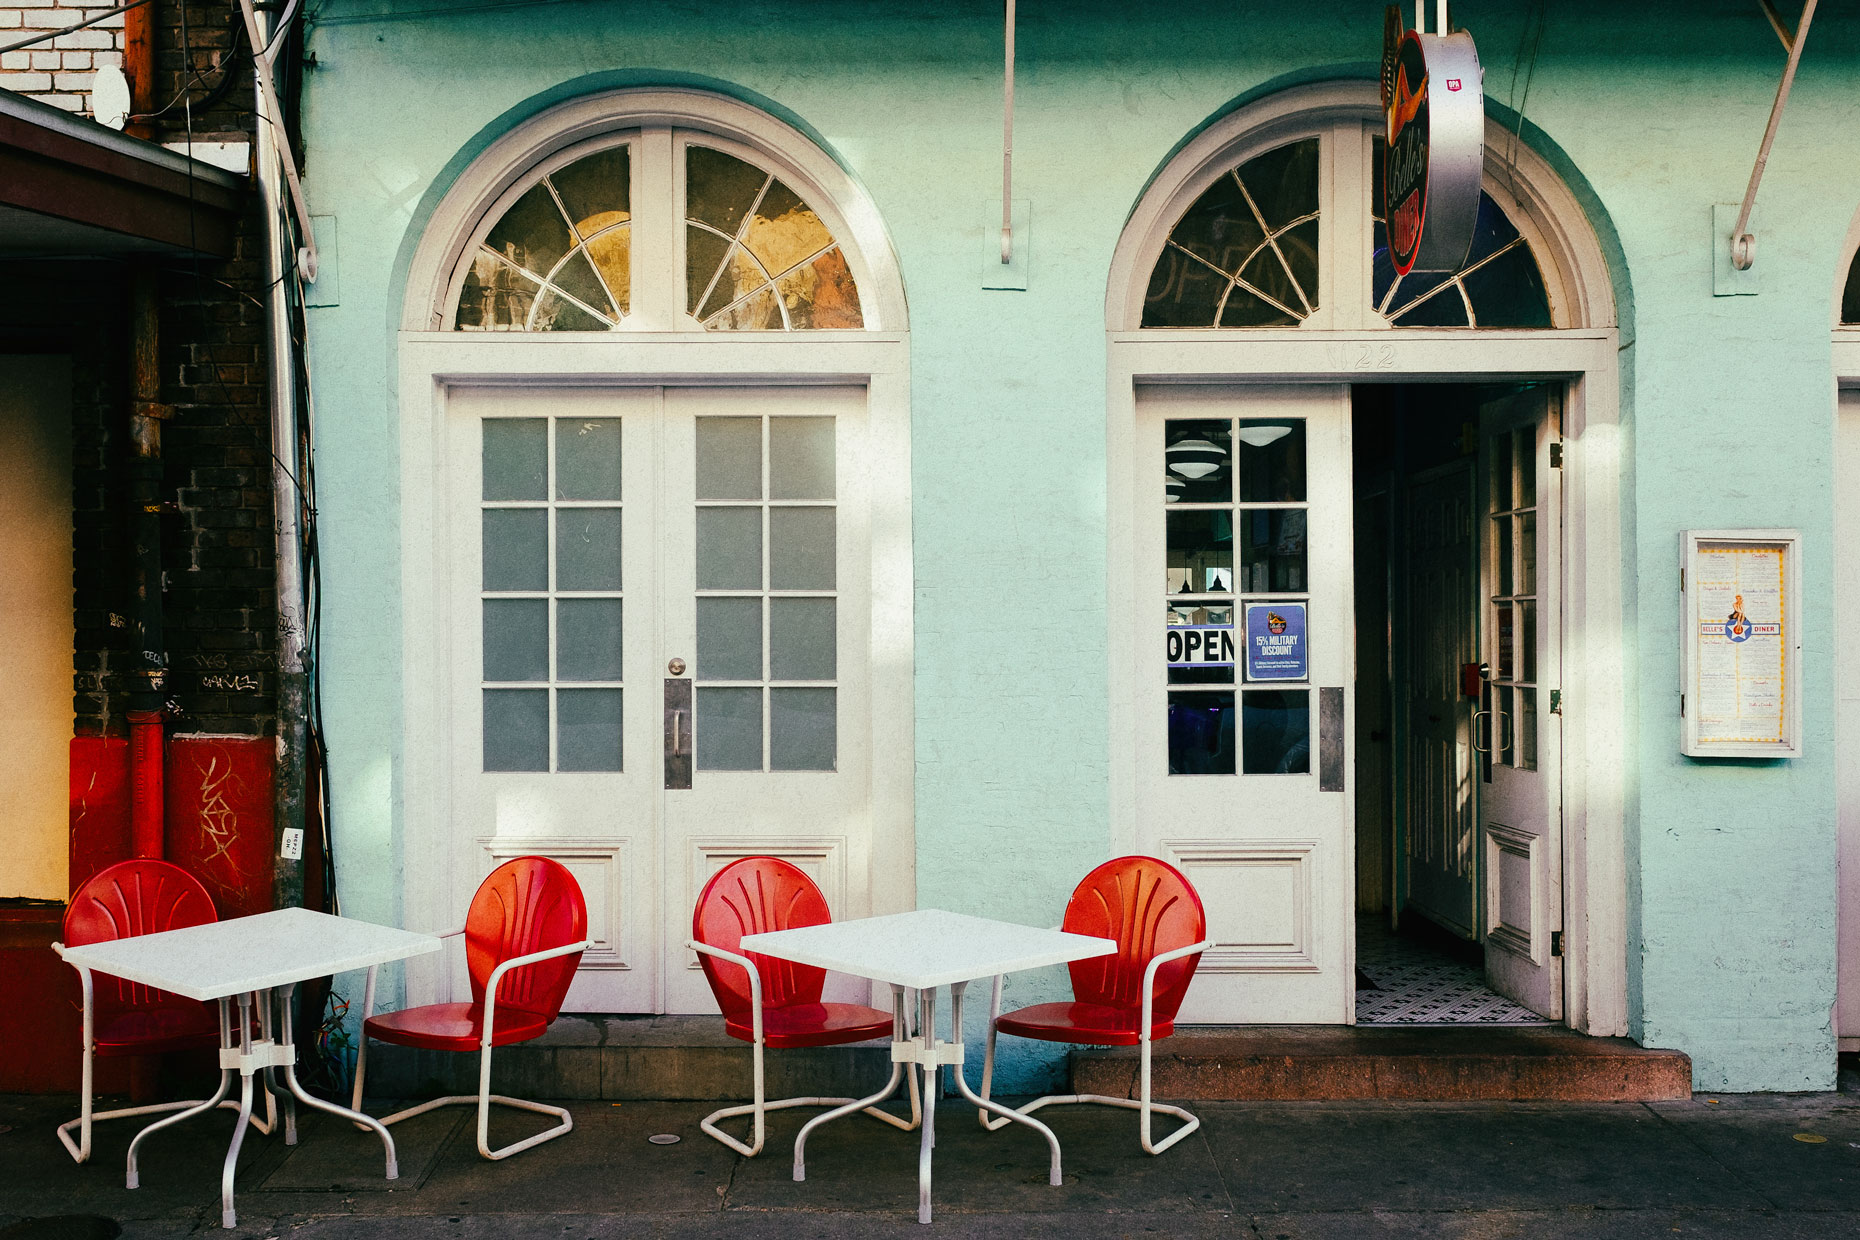 Cafe in New Orleans by photographer Kevin Brown